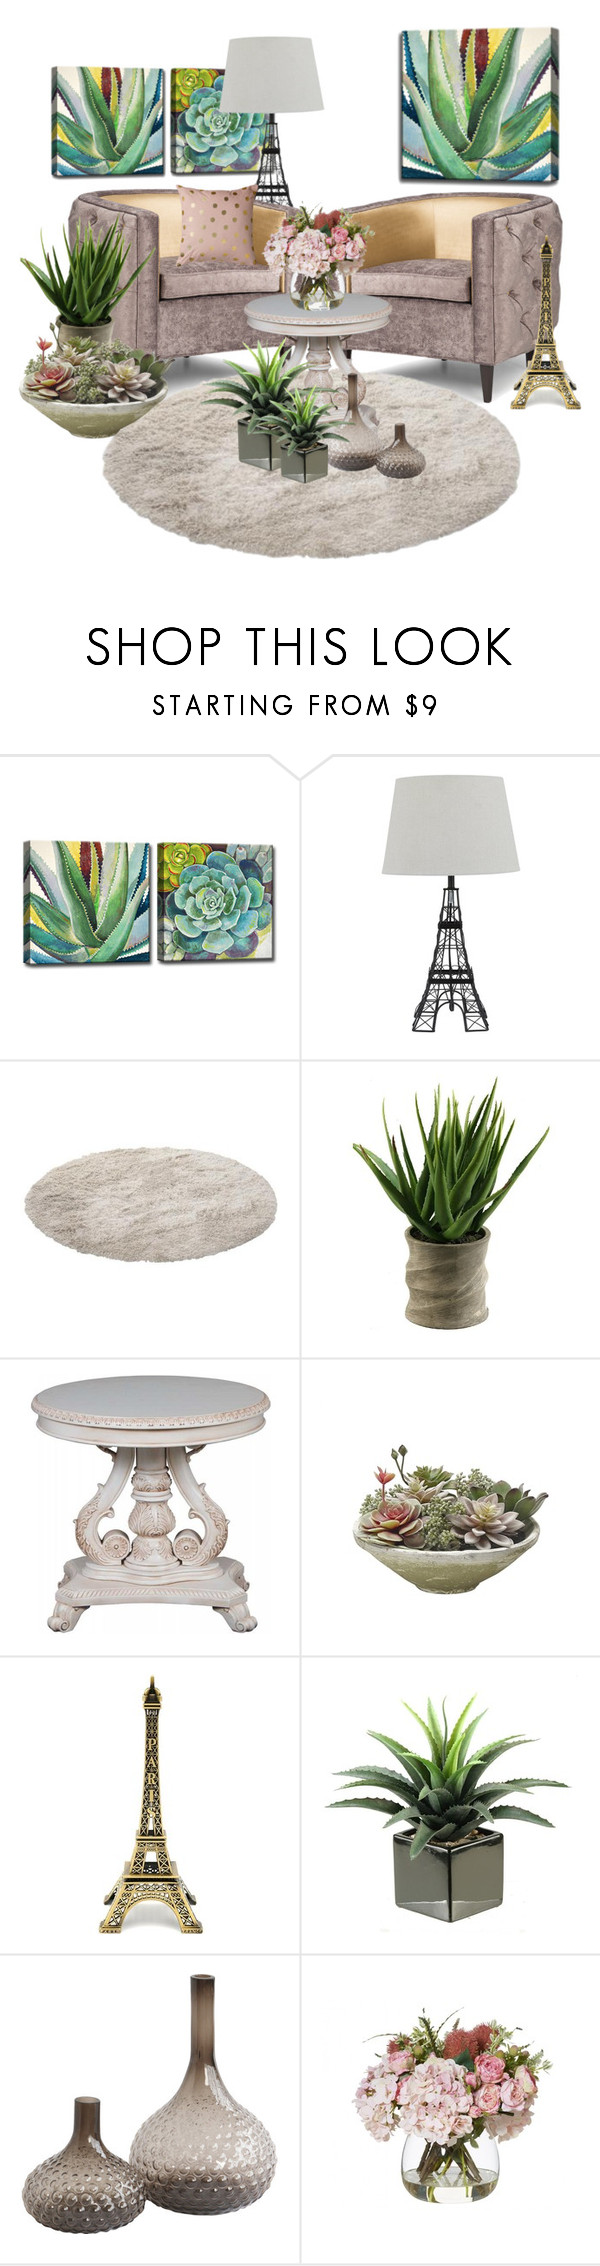 """""""Untitled #750"""" by annsofisweden ❤ liked on Polyvore featuring interior, interiors, interior design, home, home decor, interior decorating, Ready2hangart and Bloomingville"""